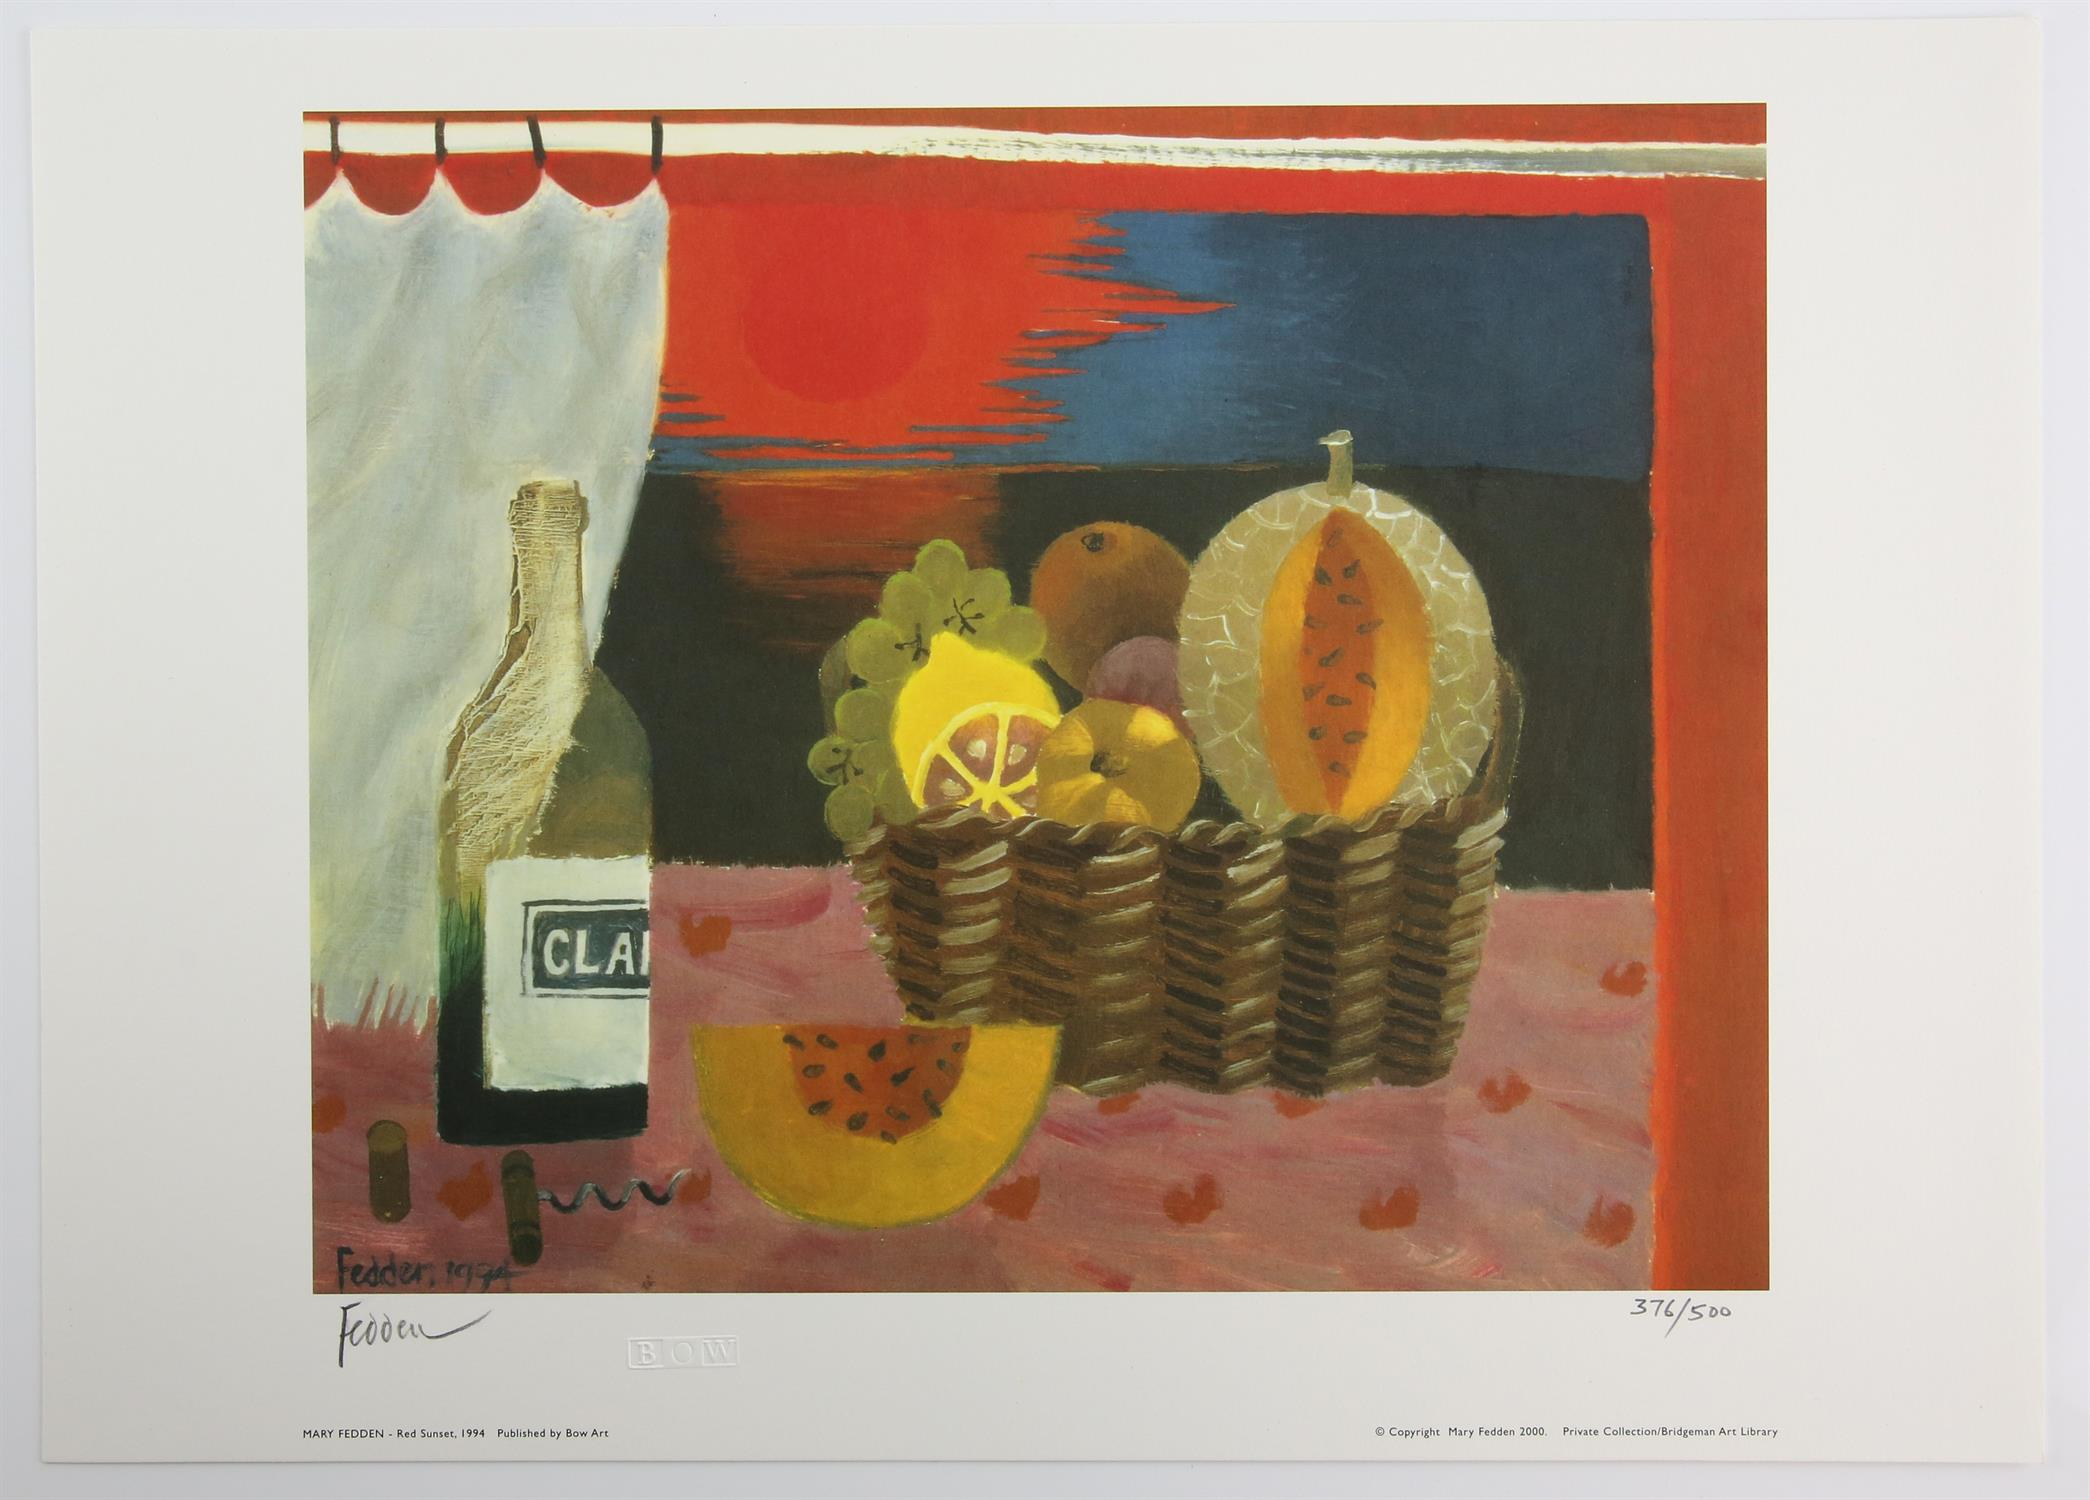 Mary Fedden (British, 1915-2012), 'Red Sunset', lithograph, signed and numbered 376/500 in pencil - Image 2 of 2